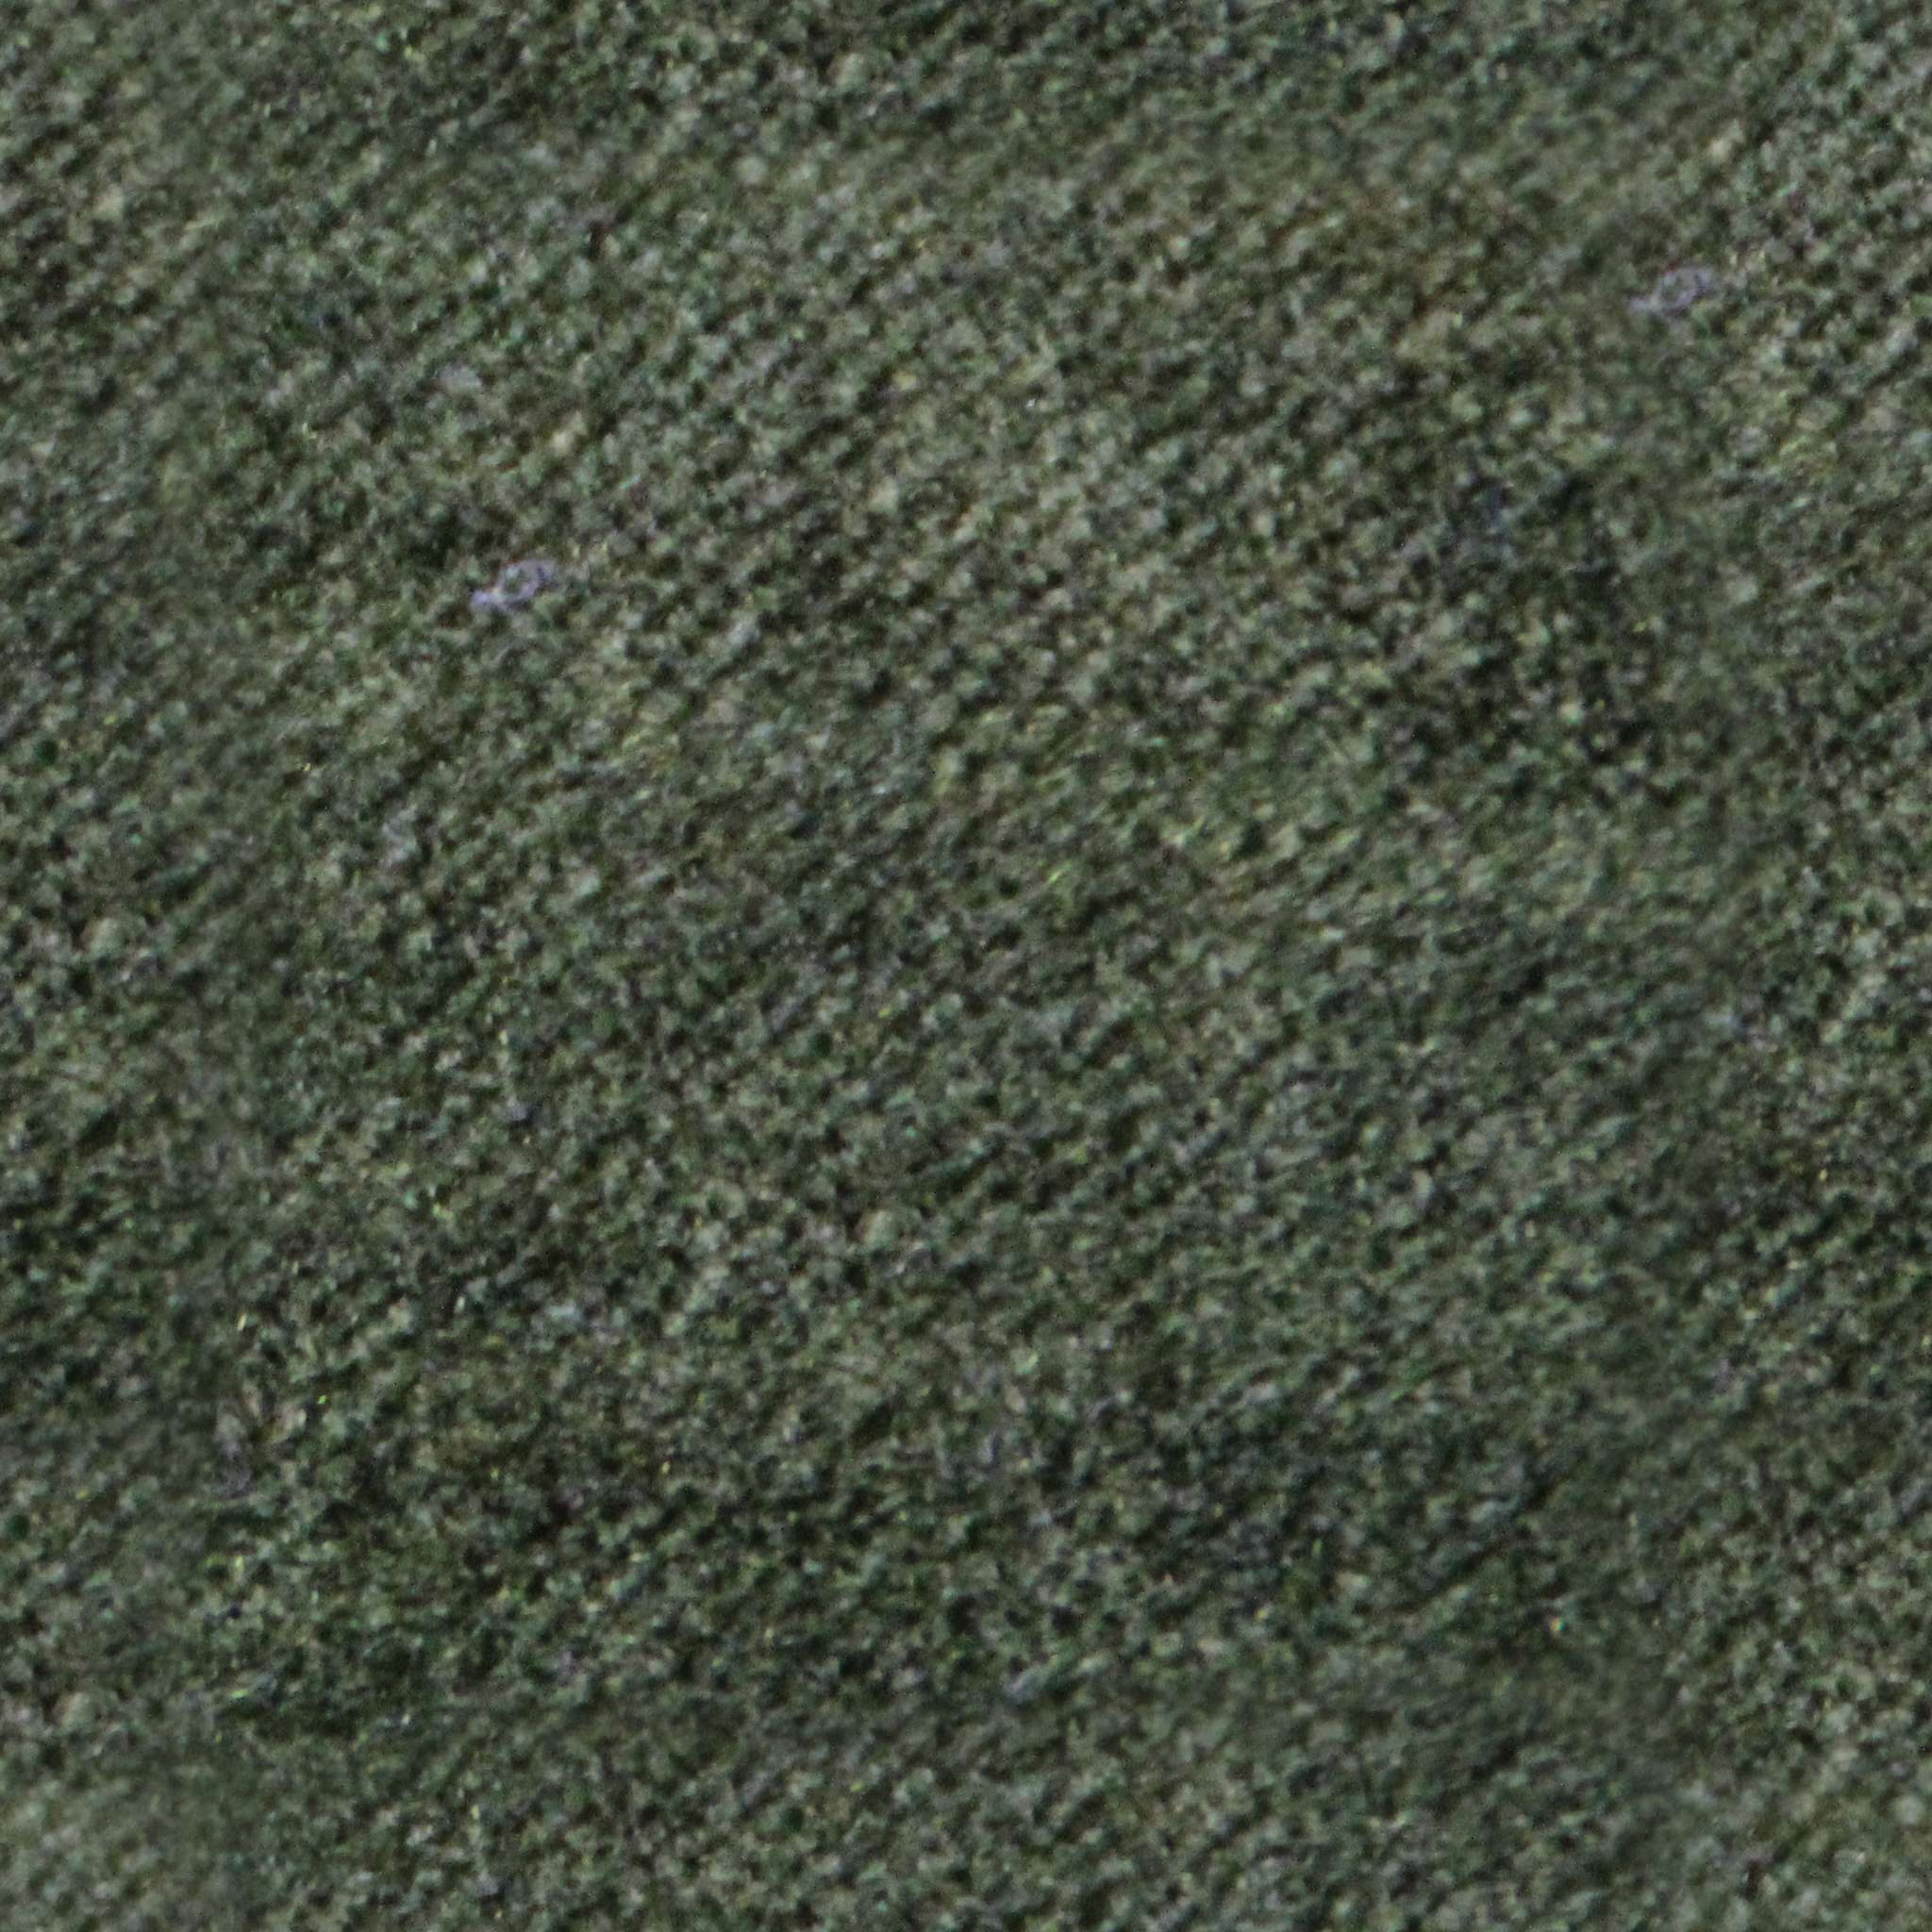 Fabric green carpet seamless texture with normalmap for Light green carpet texture